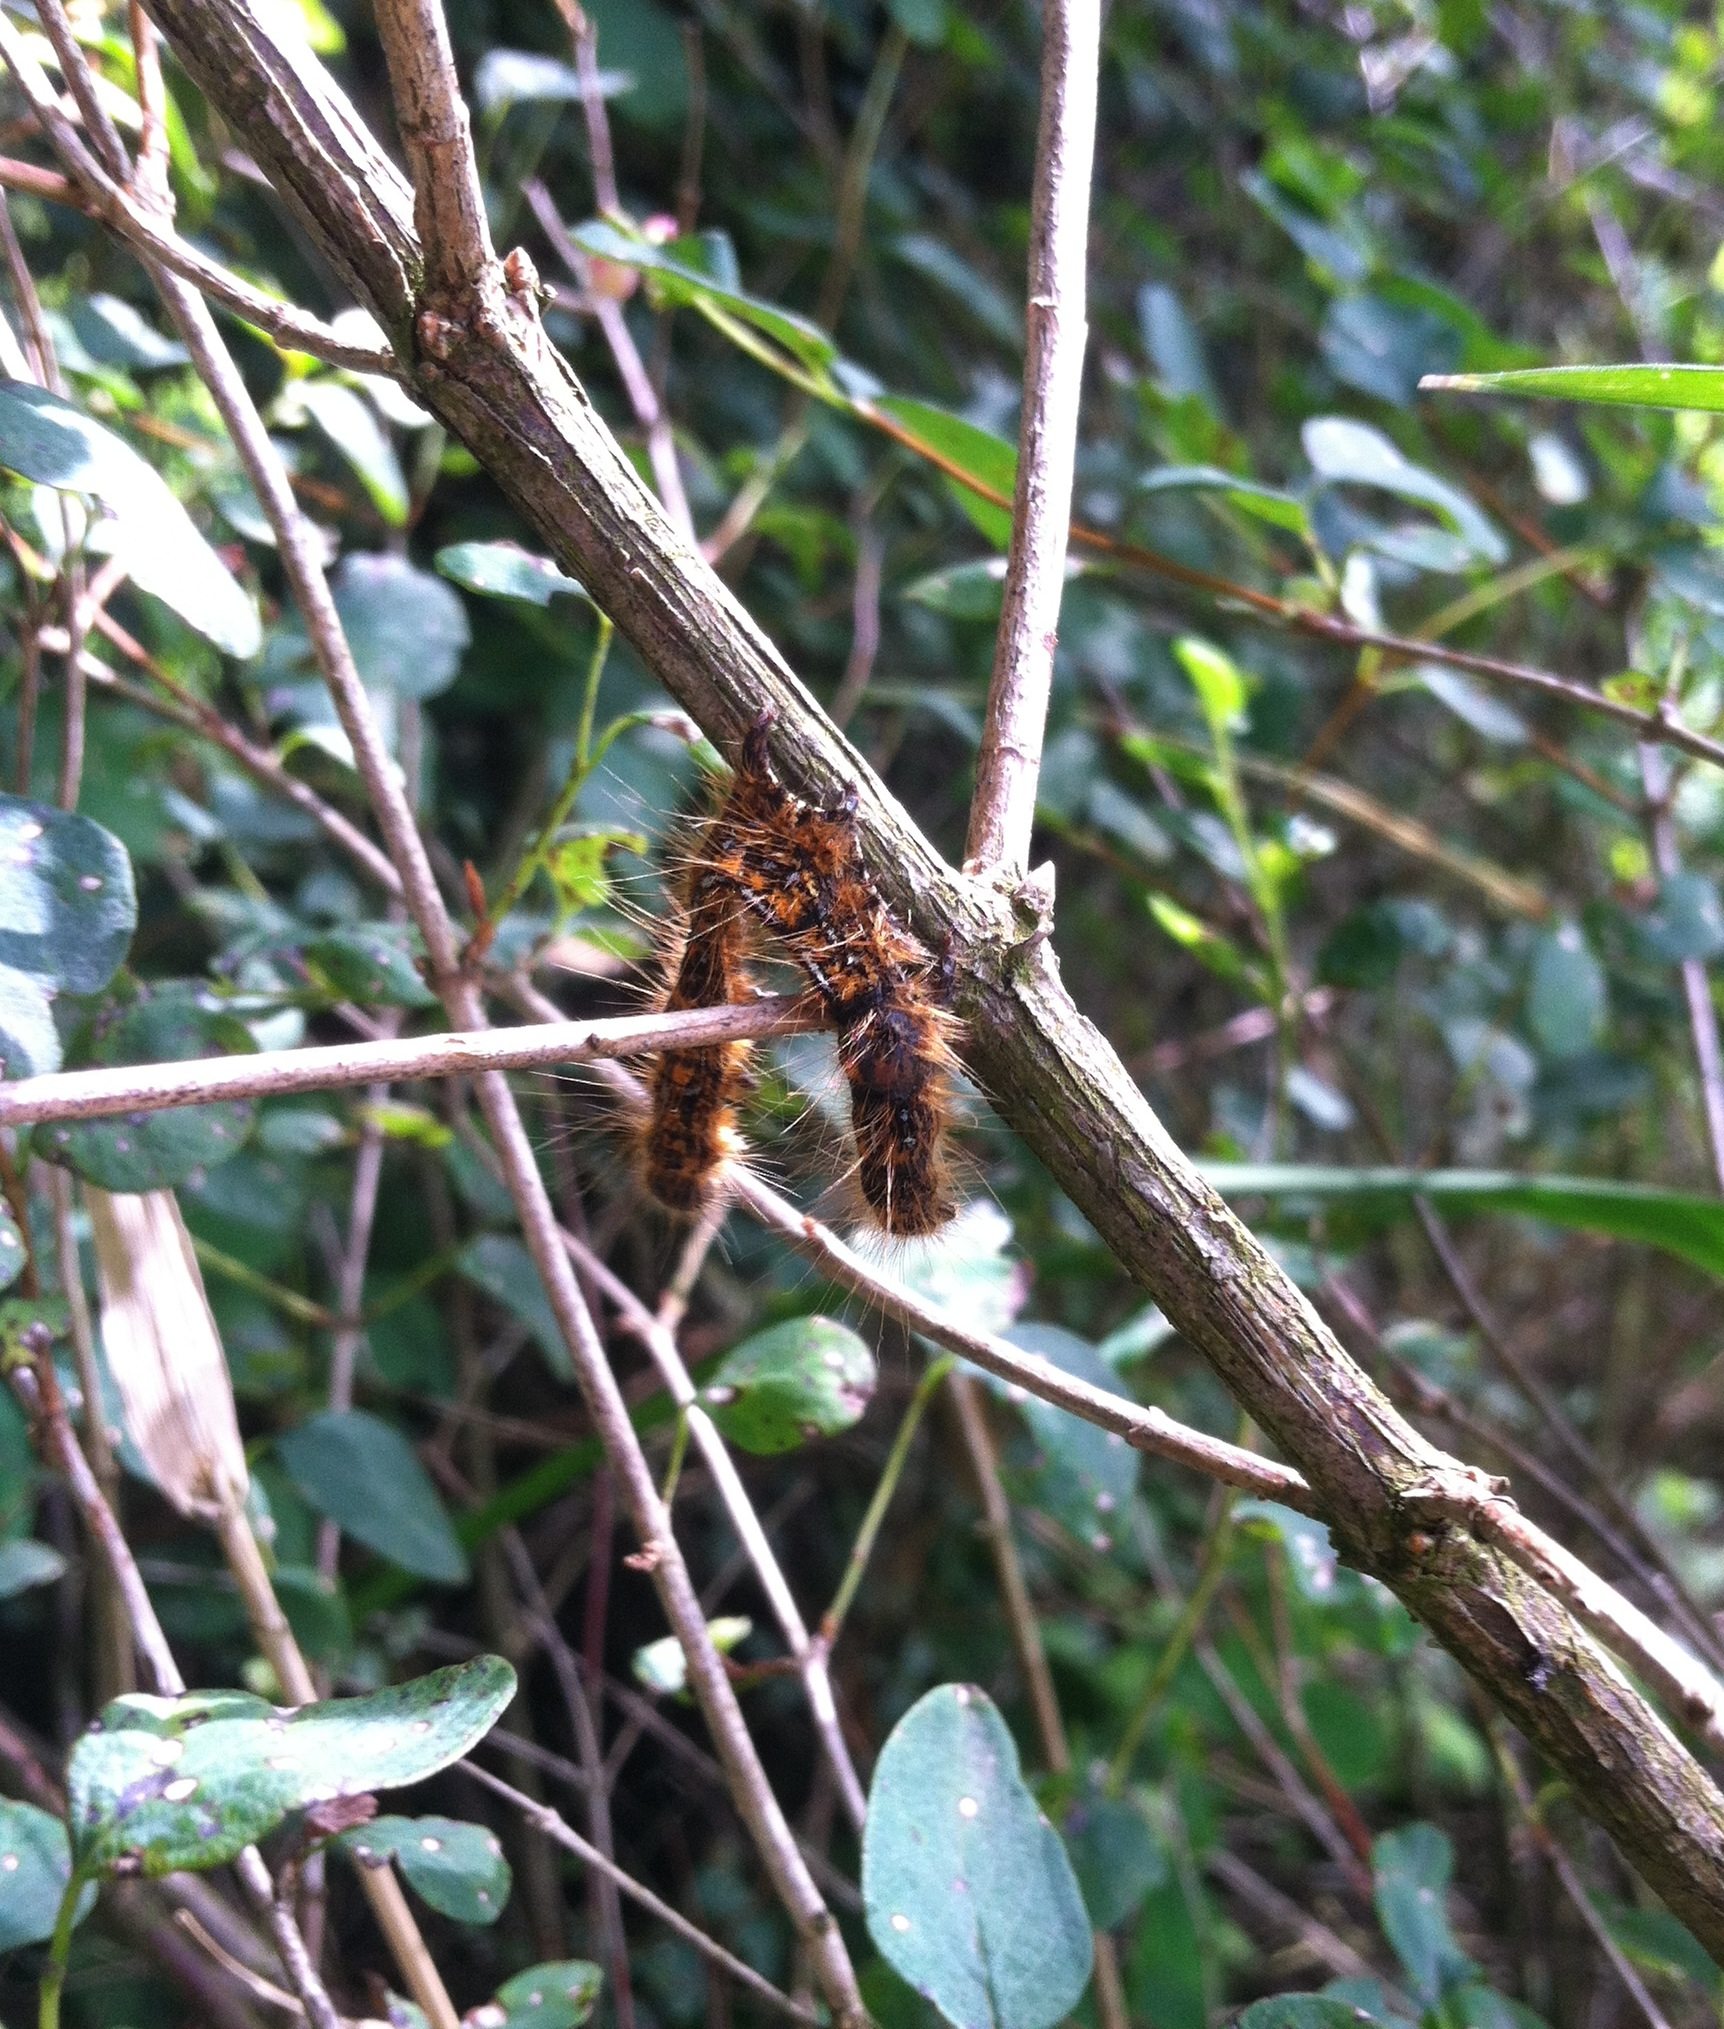 Western tent caterpillars infected by a virus hang in an upside-down V. & The boom-and-bust life of defoliating insects - TreeTopics